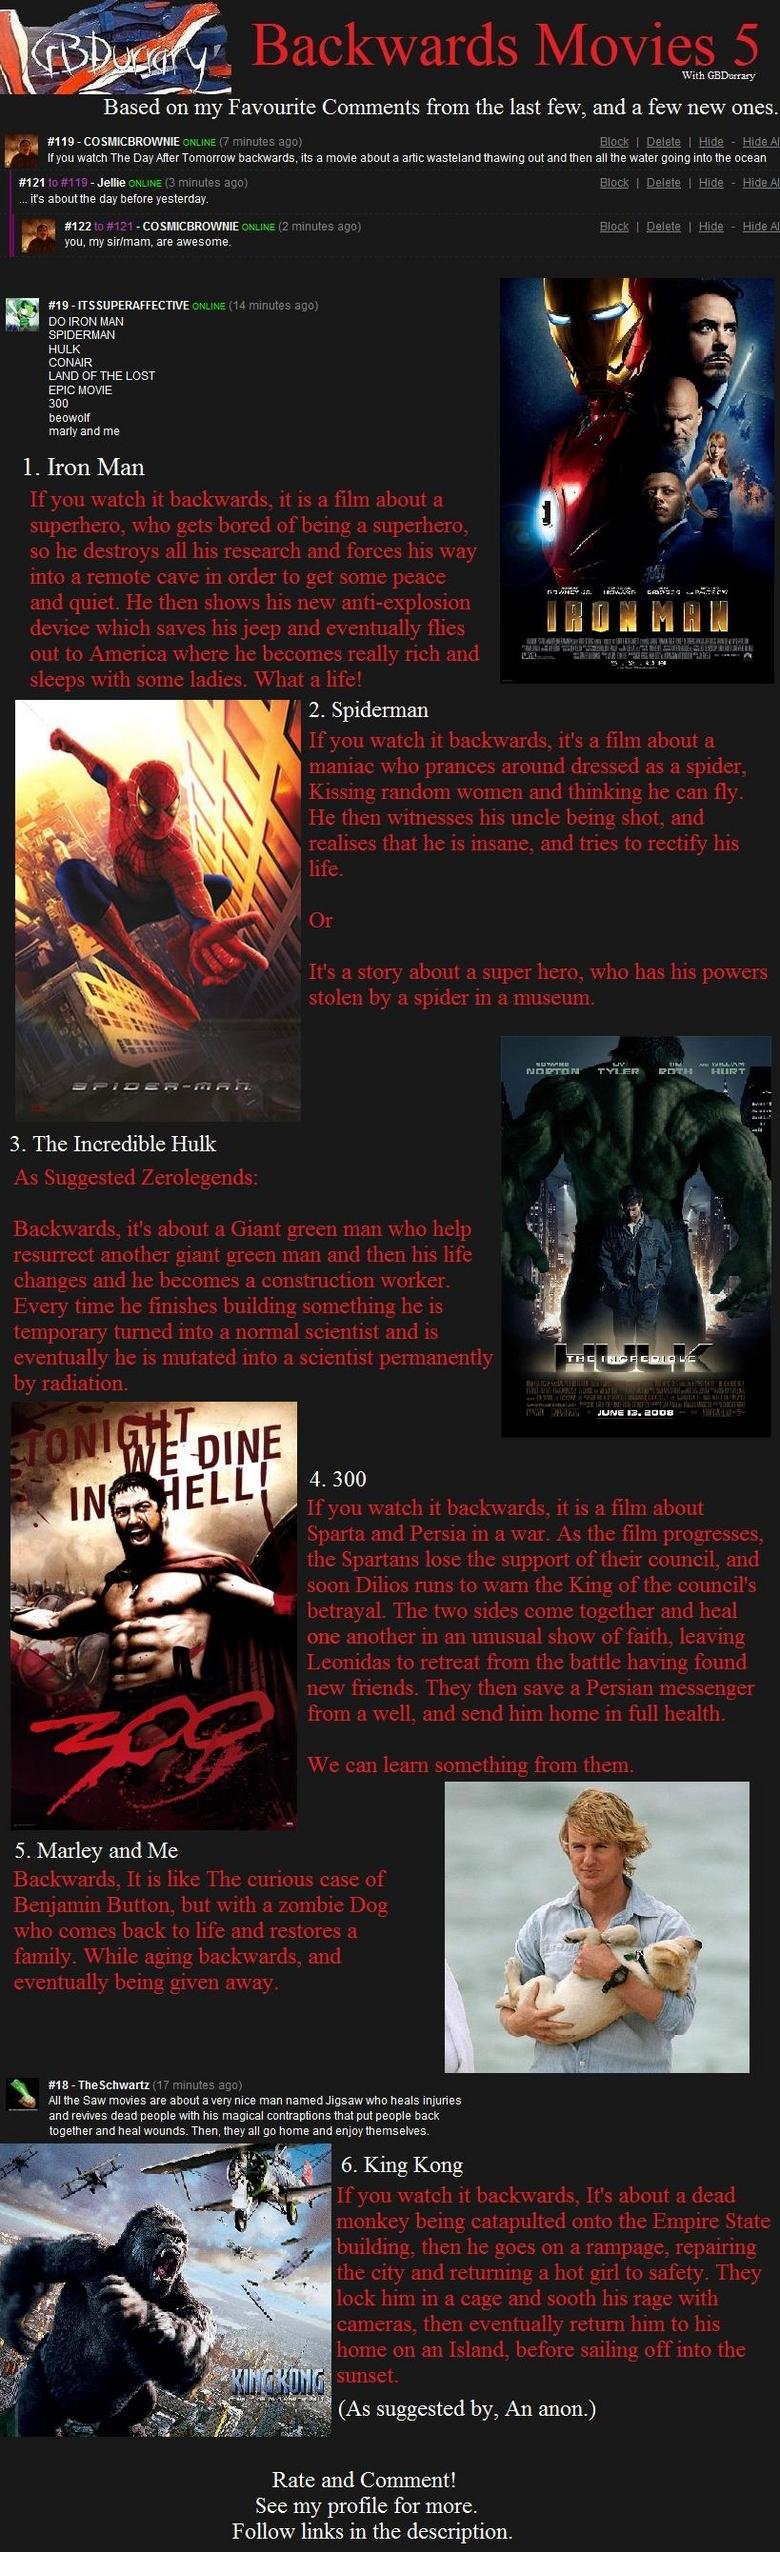 """Backwards Movies 5. Part 7 is here: <a href=""""pictures/456110/Backwards+Movies+7+Life/"""" target=blank>funnyjunk.com/funnypictures/456110/Backwards"""